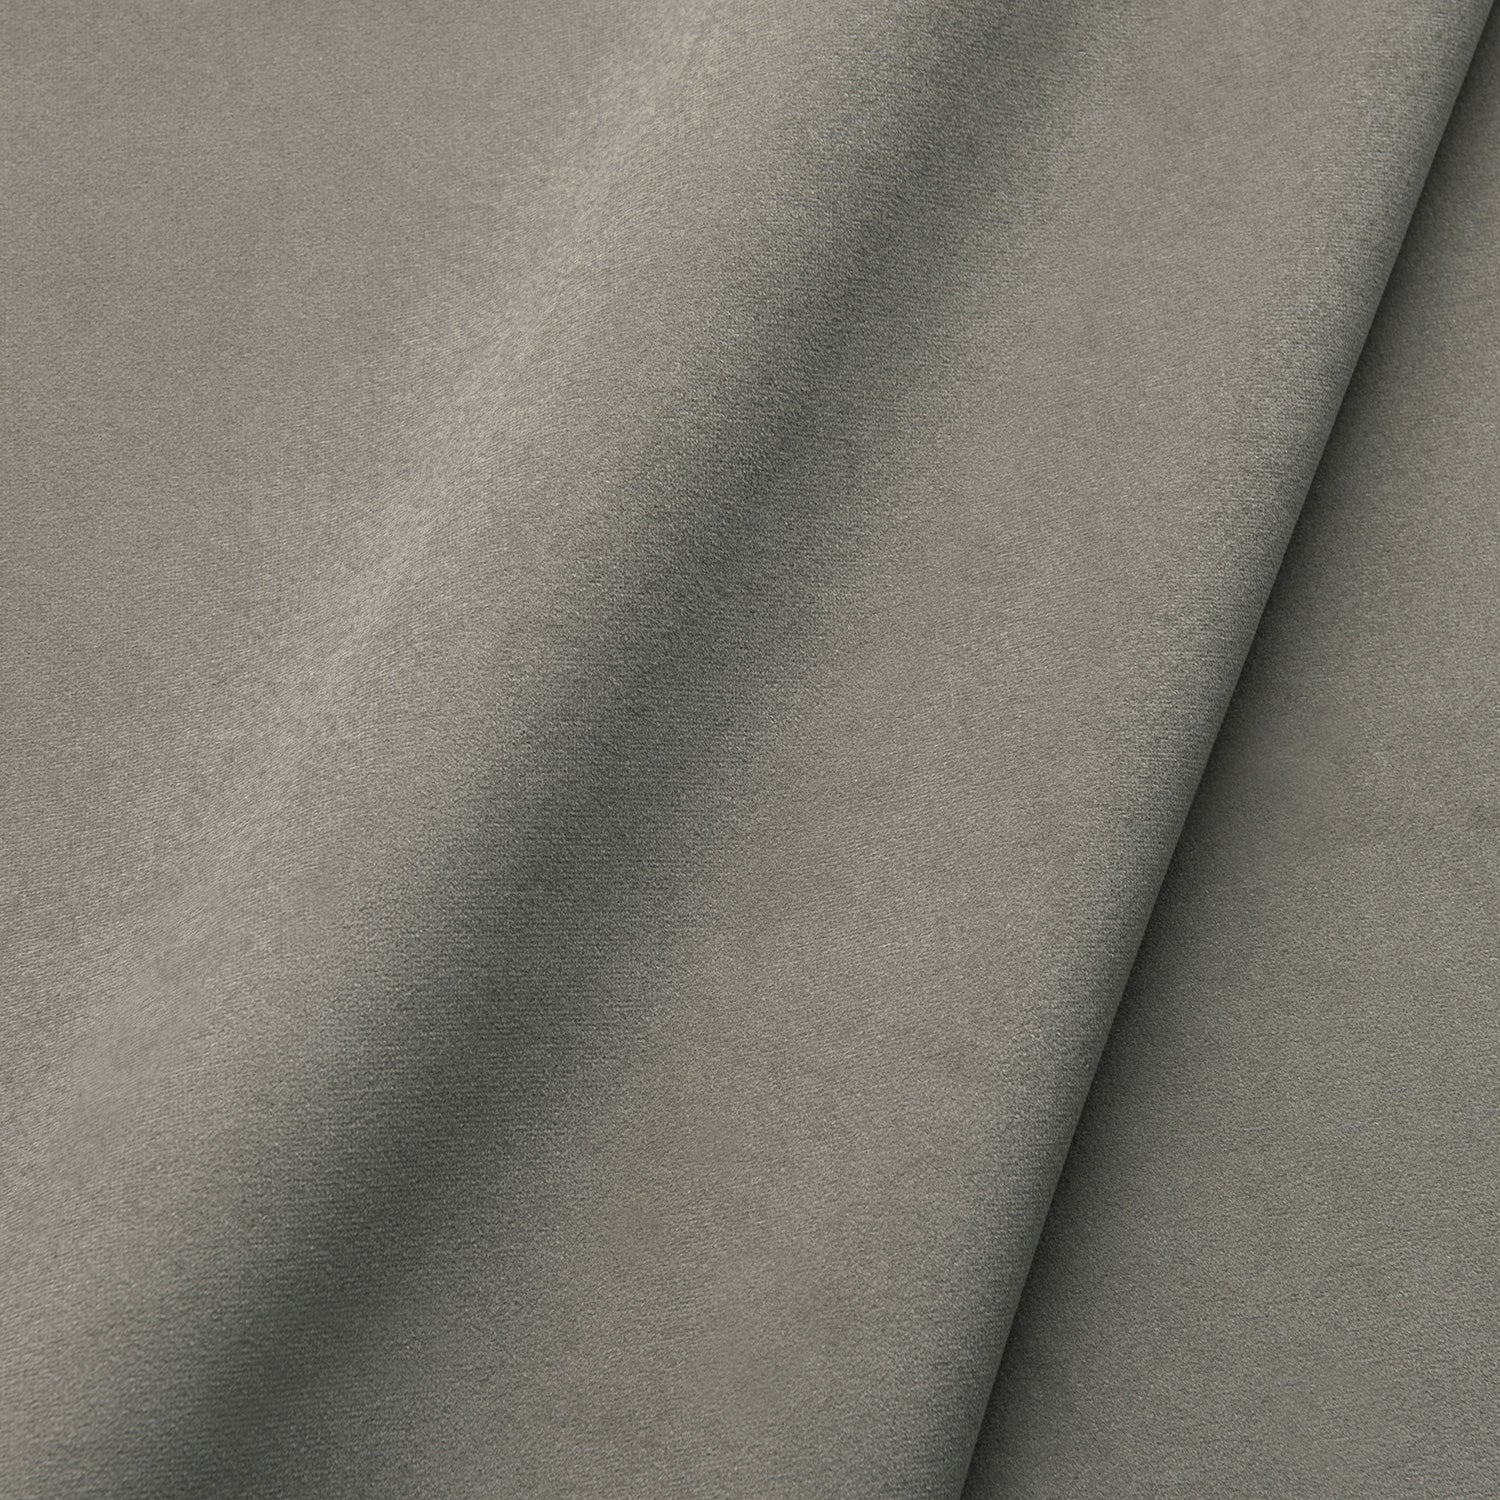 Fabric swatch of a plain stain resistant velvet upholstery fabric in a neutral colour